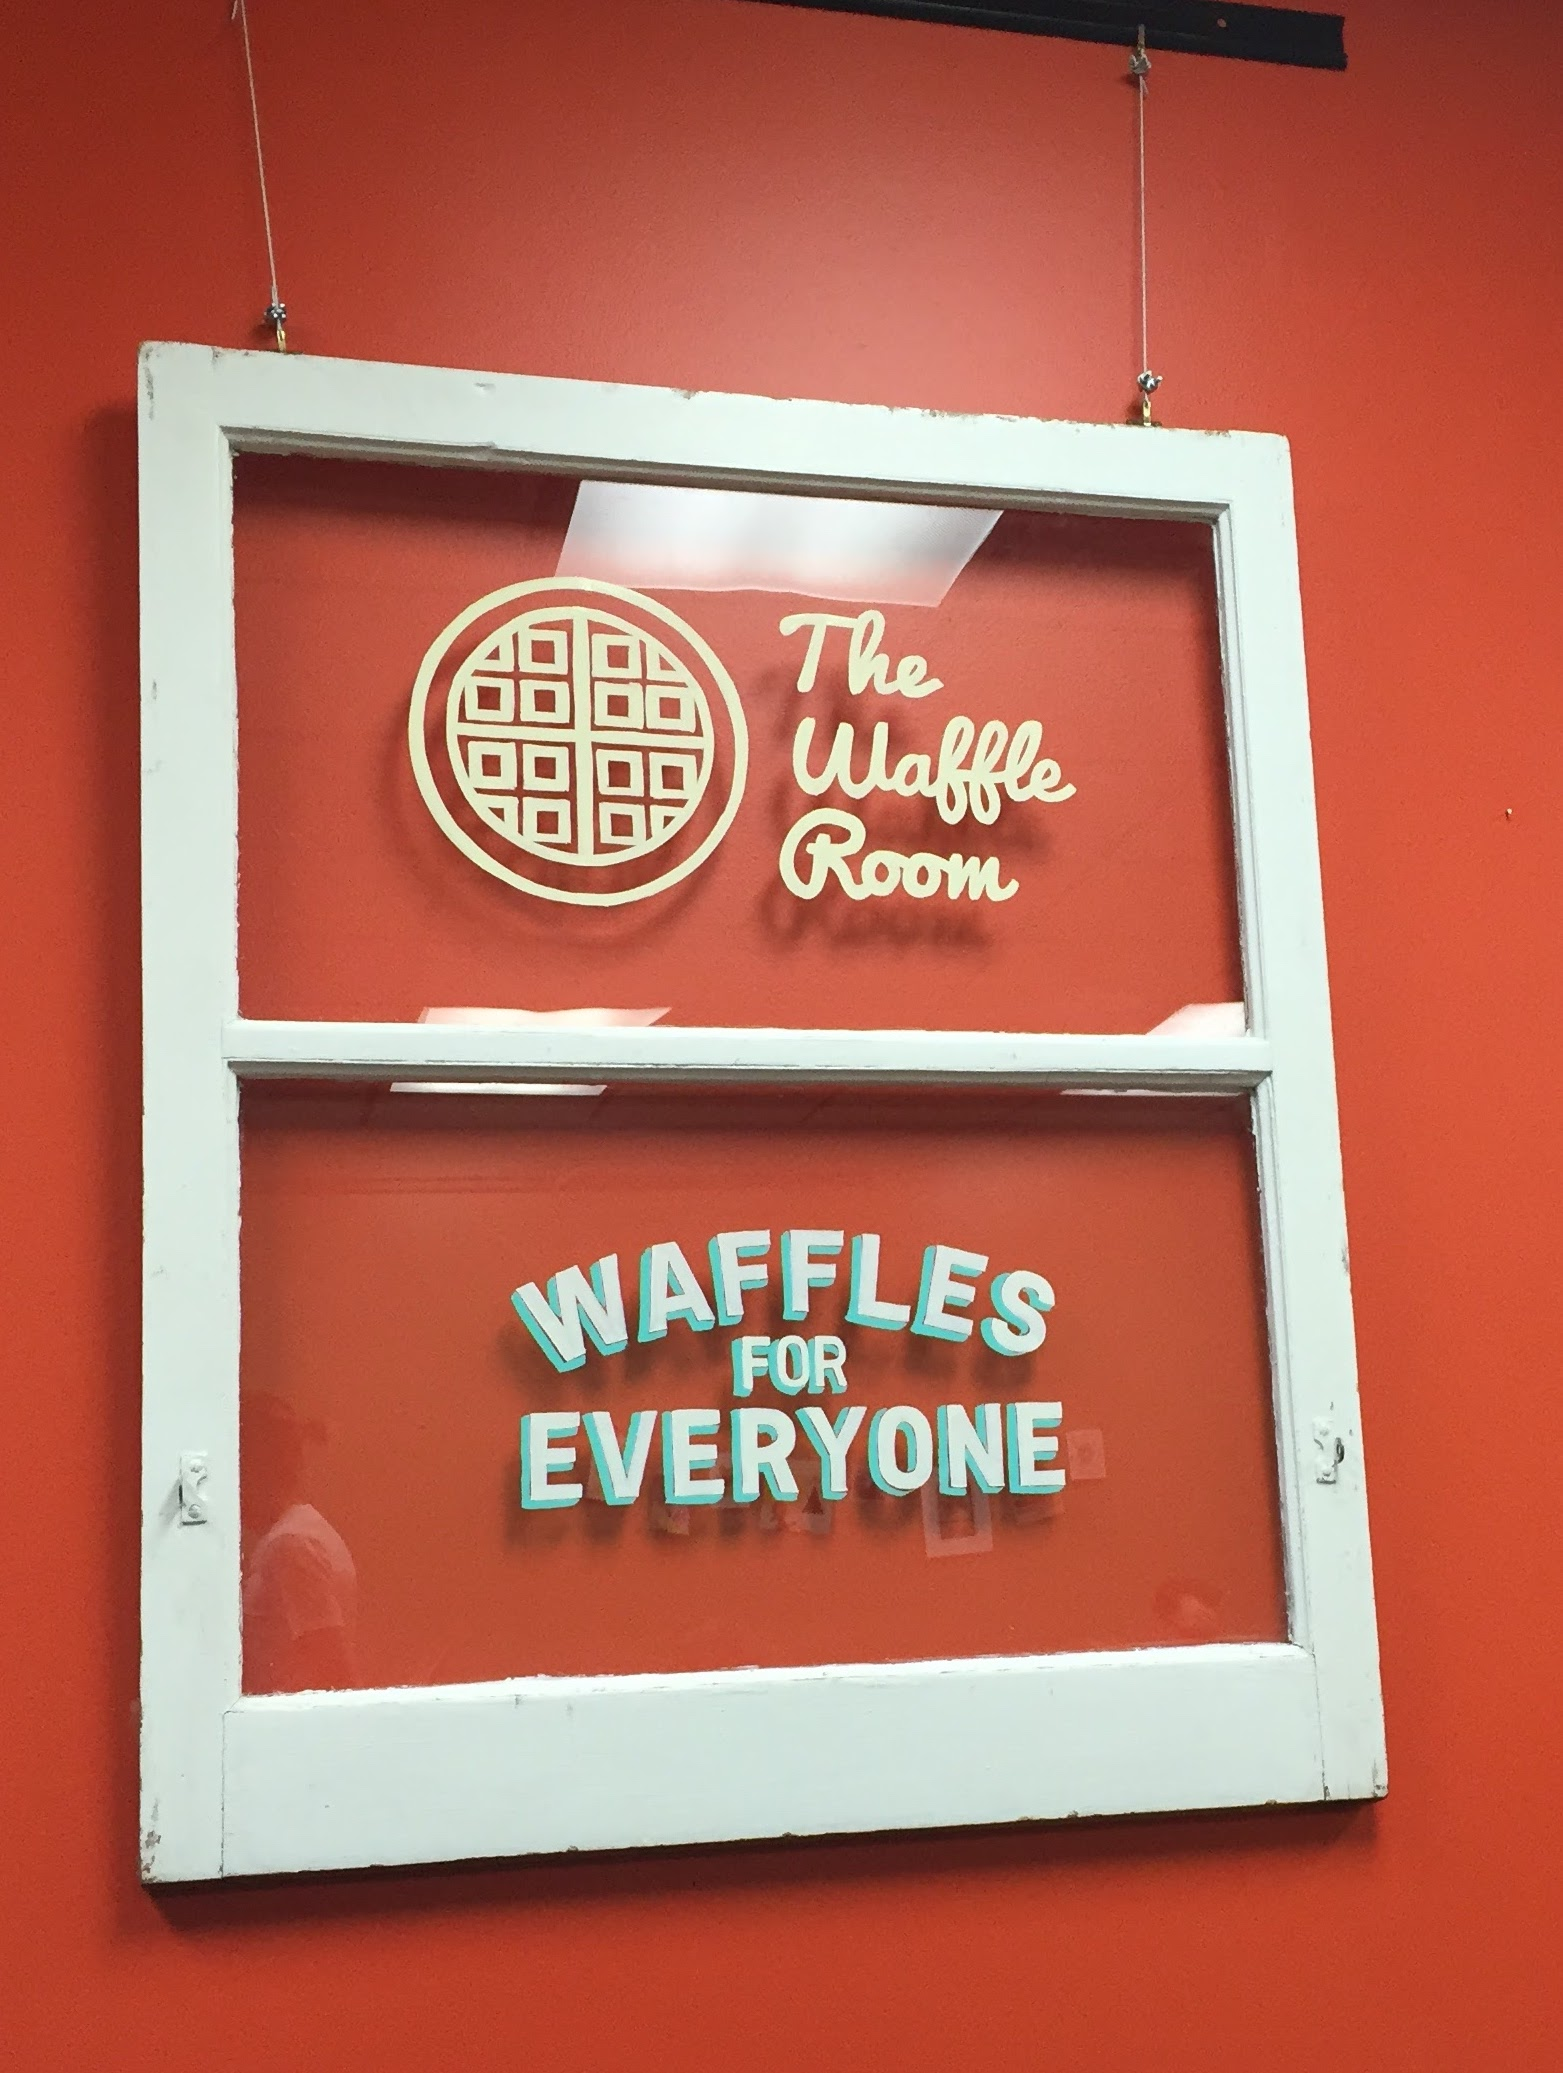 A surprise pop-up waffle shop (PS: The Best suprises are waffles) 🍴